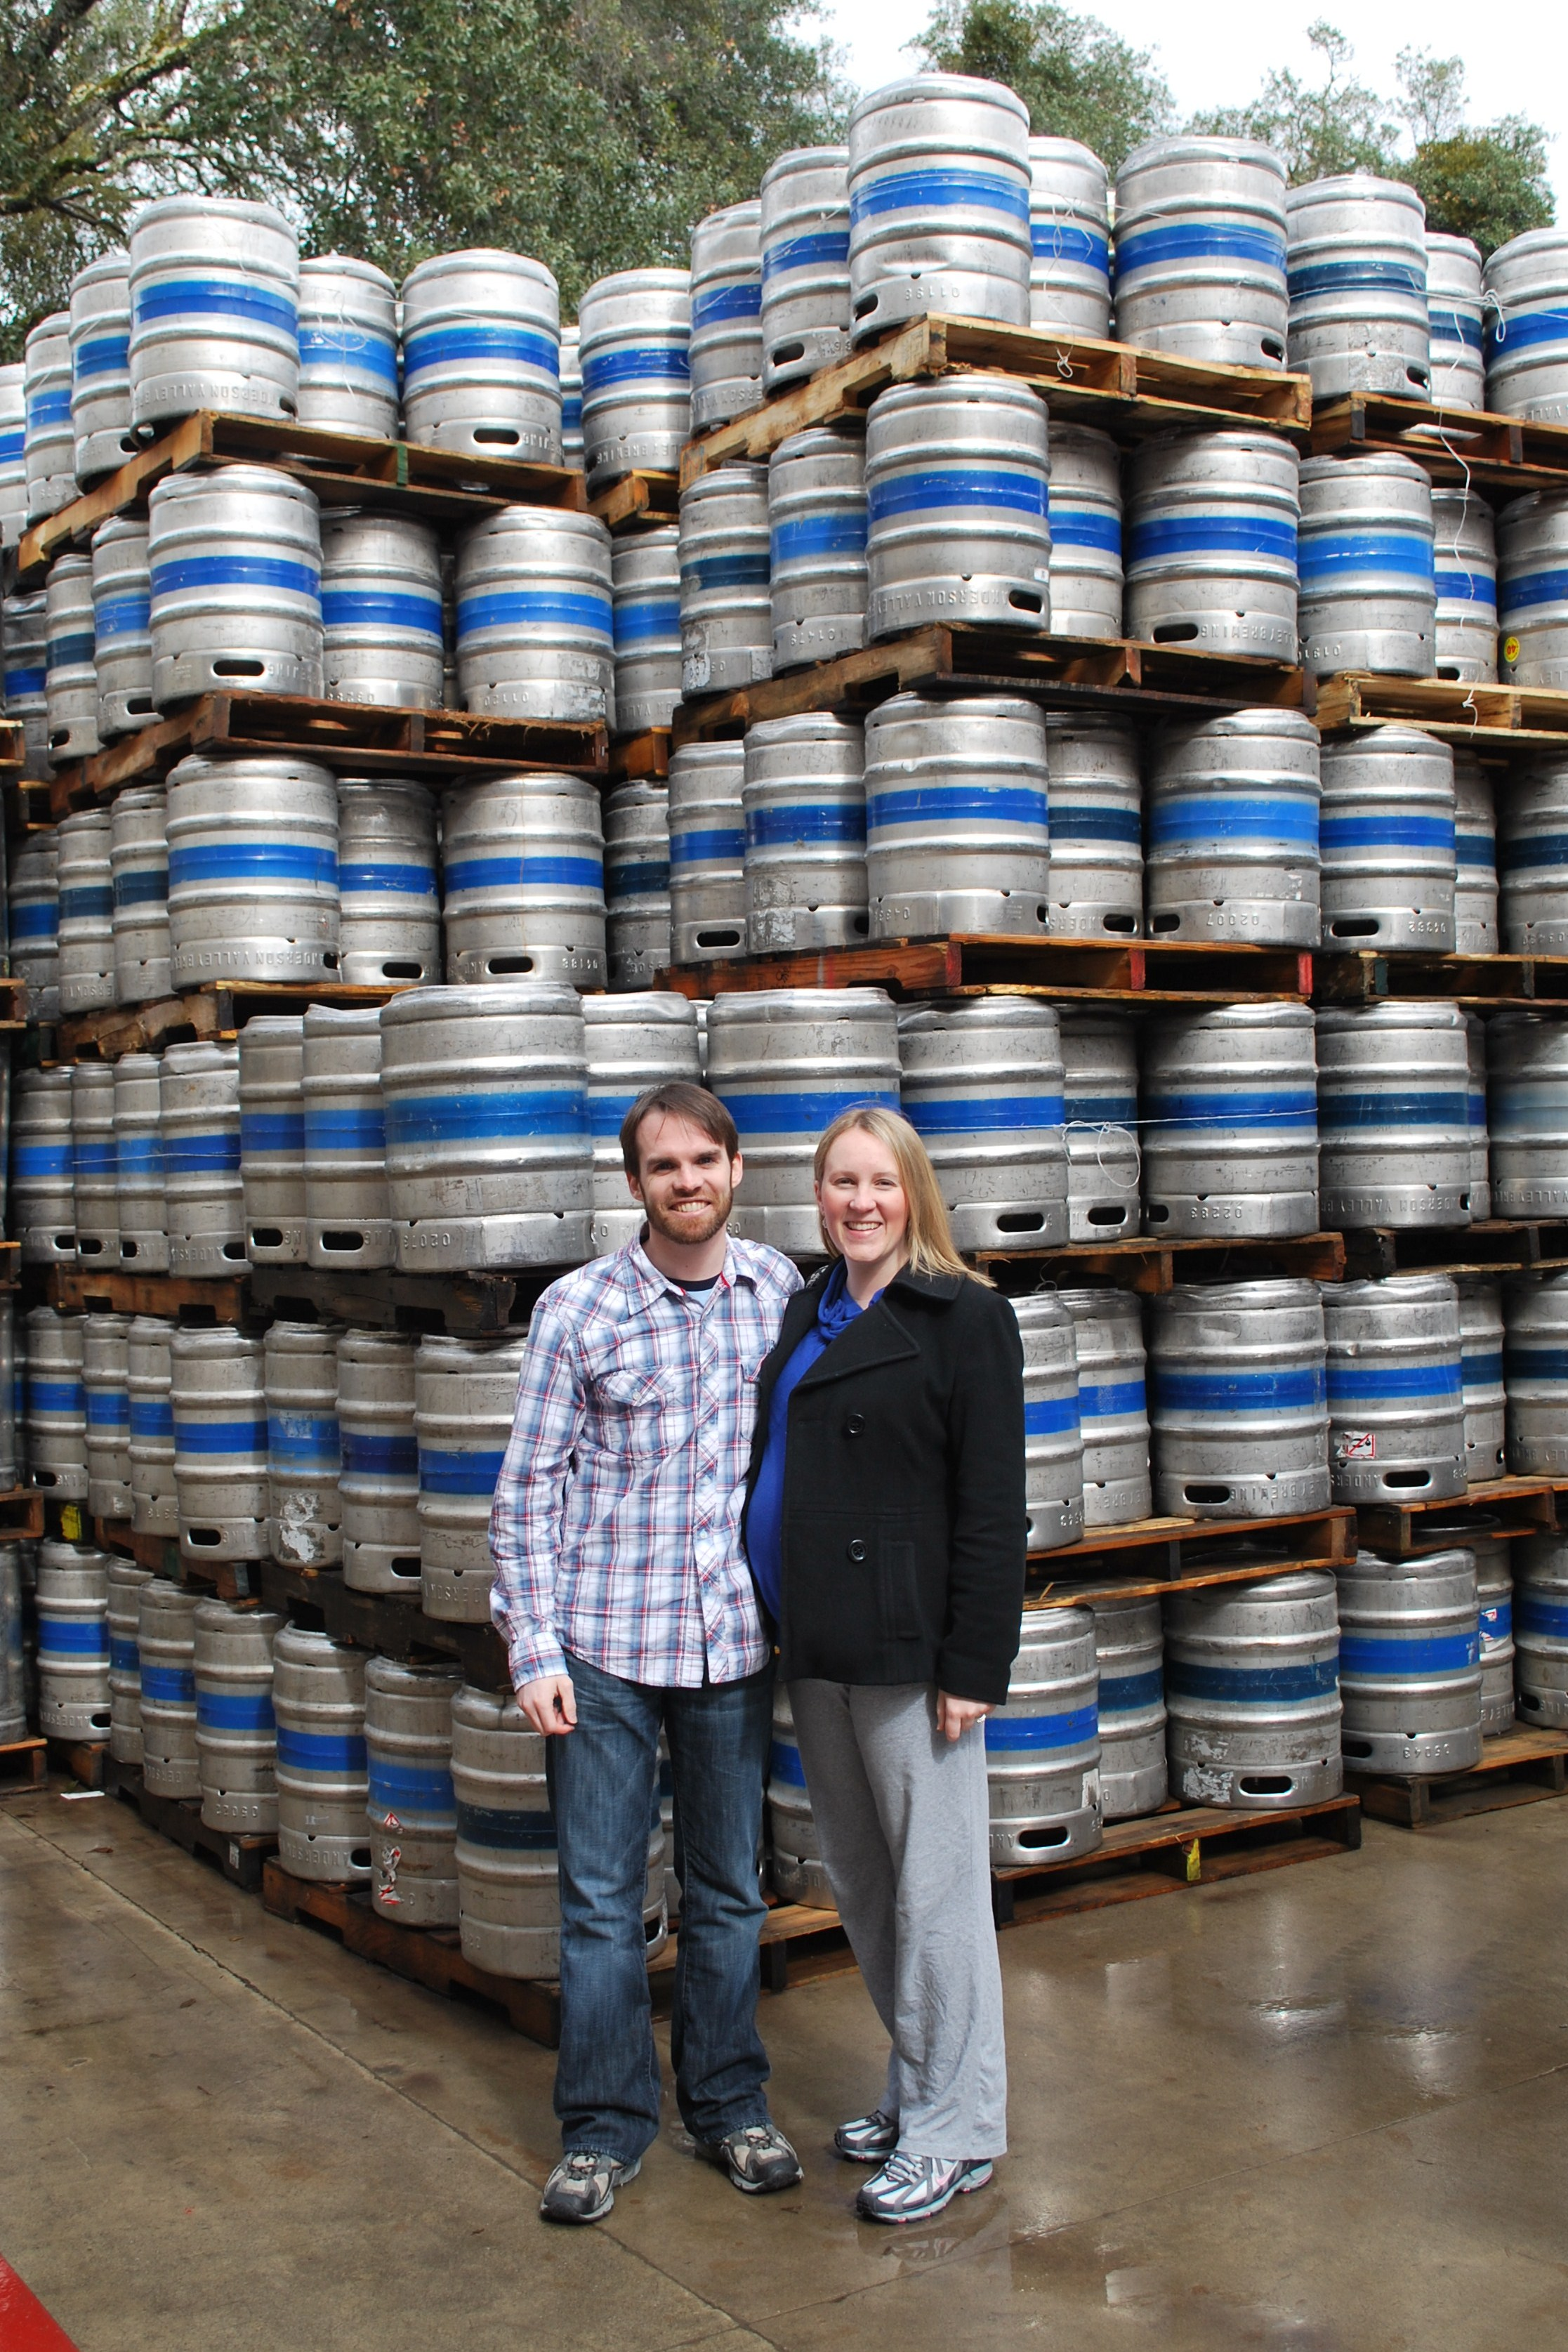 Anderson Valley Brewing Company tour (4 years ago when I was pregnant with Little V)